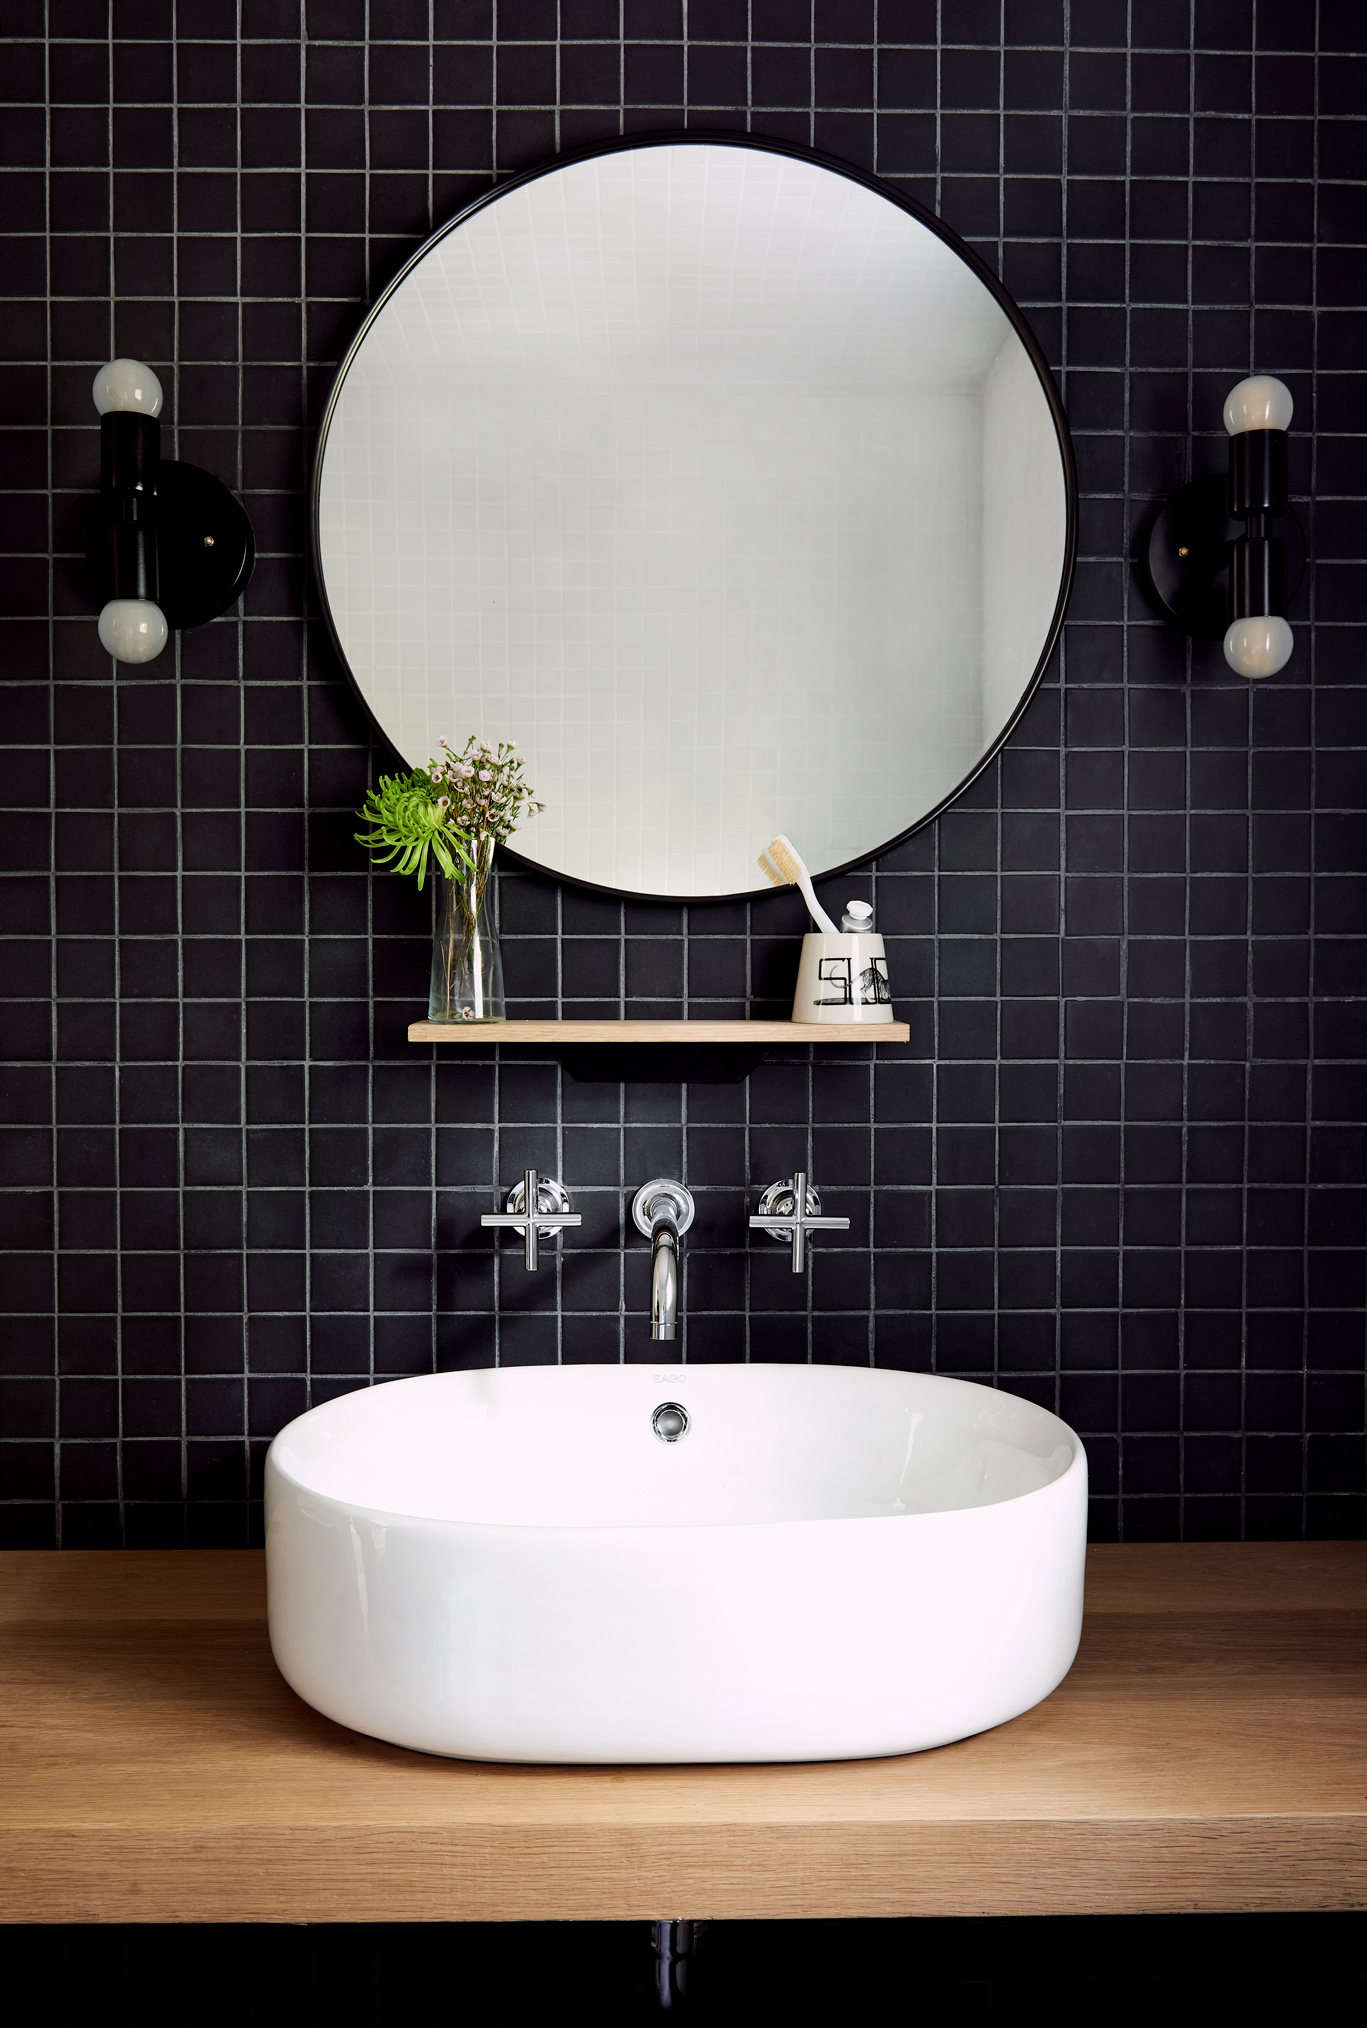 Unpolished black mosaic tiles from Daltile were used for an accent wall in the bathroom. The